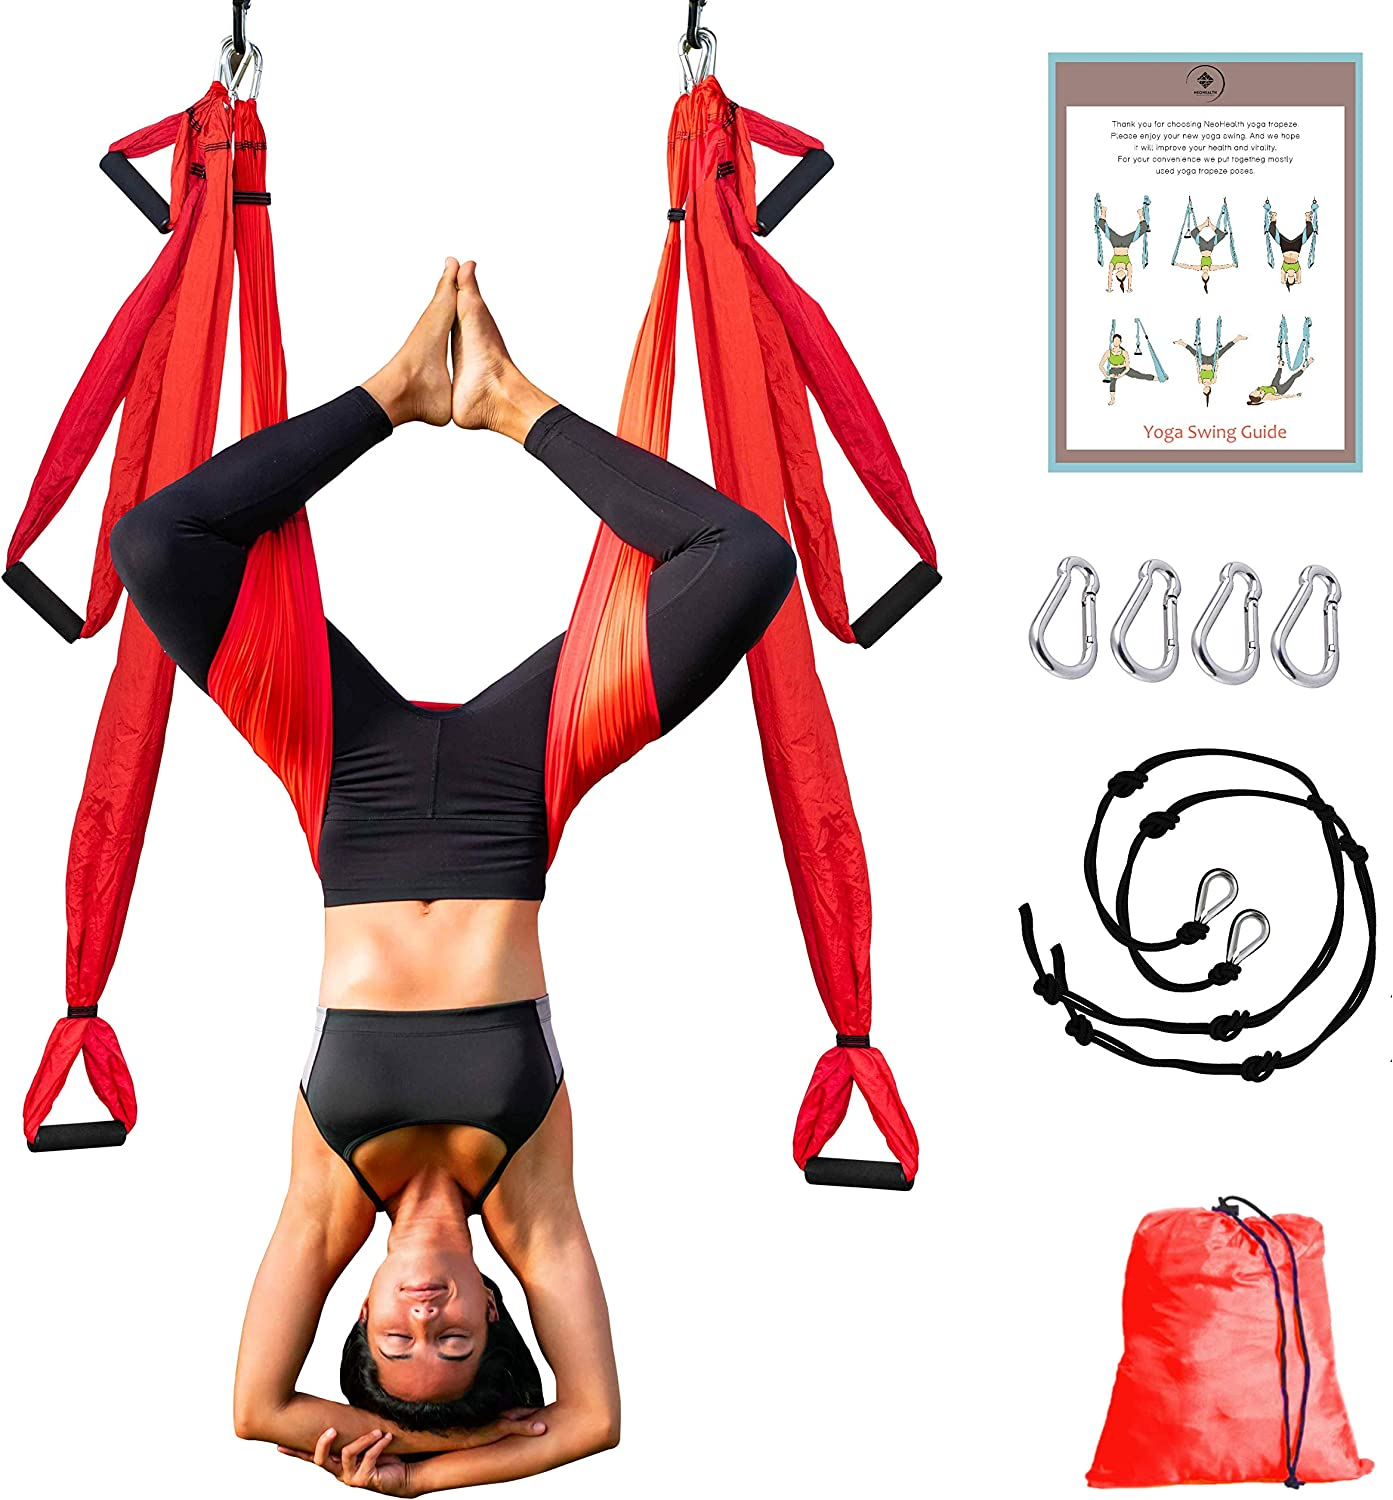 NeoHealth Aerial Yoga Hammock | Air Yoga Swing Kit | Premium Arial Yoga Silk Swing for Inversion Sling Exercise with 6 Extension Hanging Straps & ...